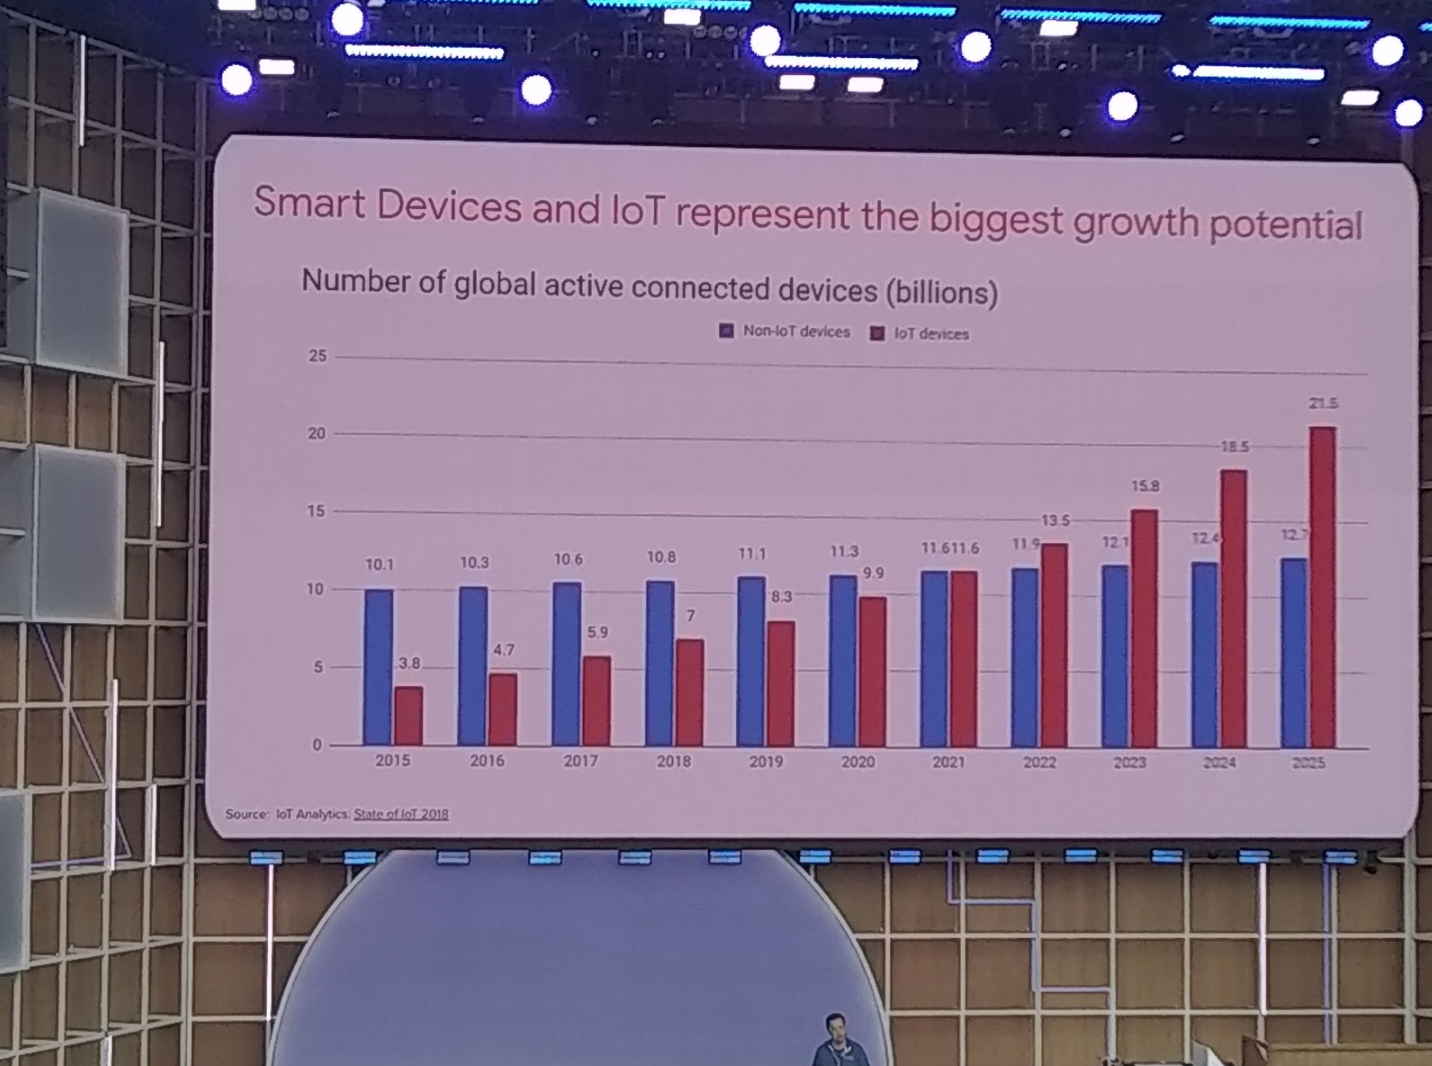 Google Predicts IoT Devices to Overtake Non-IoT by 2025